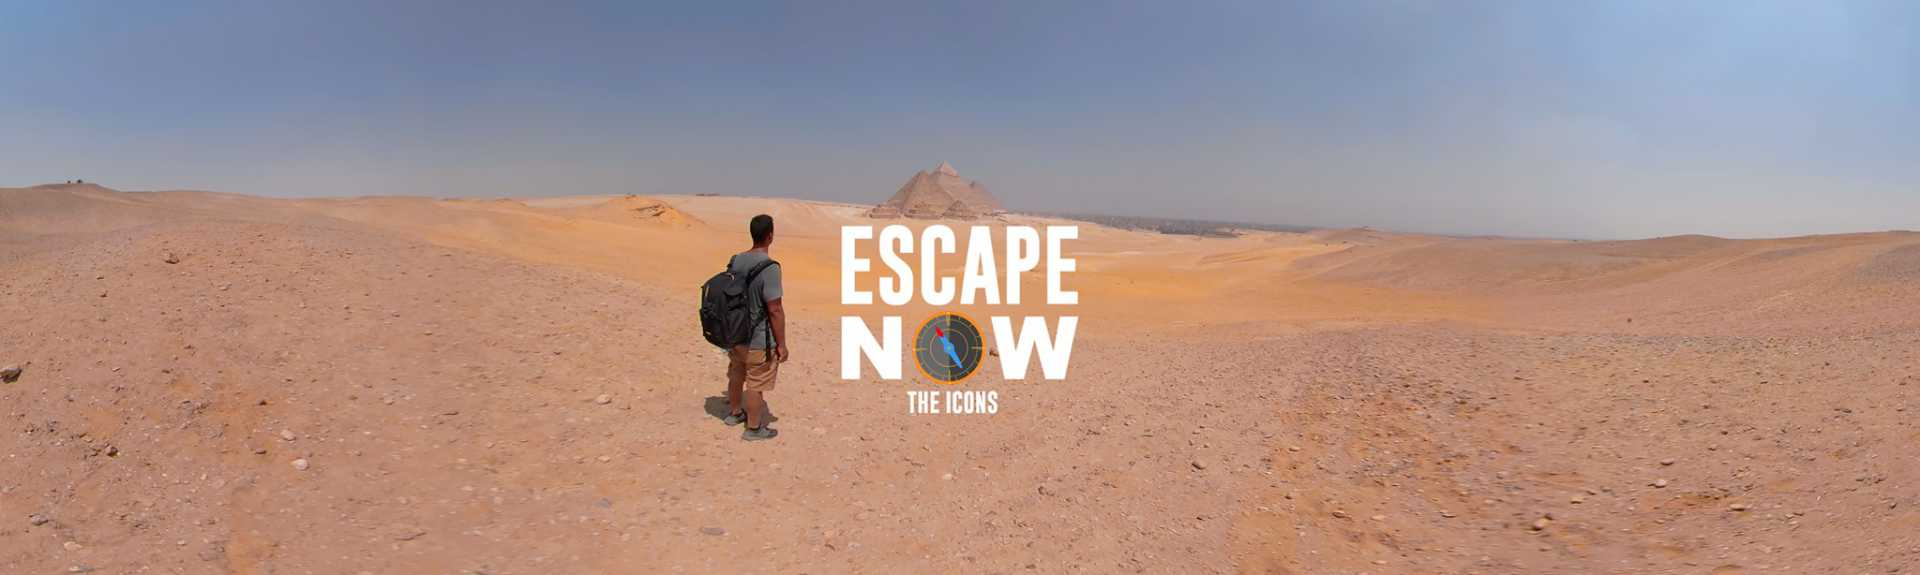 Escape Now: The Icons